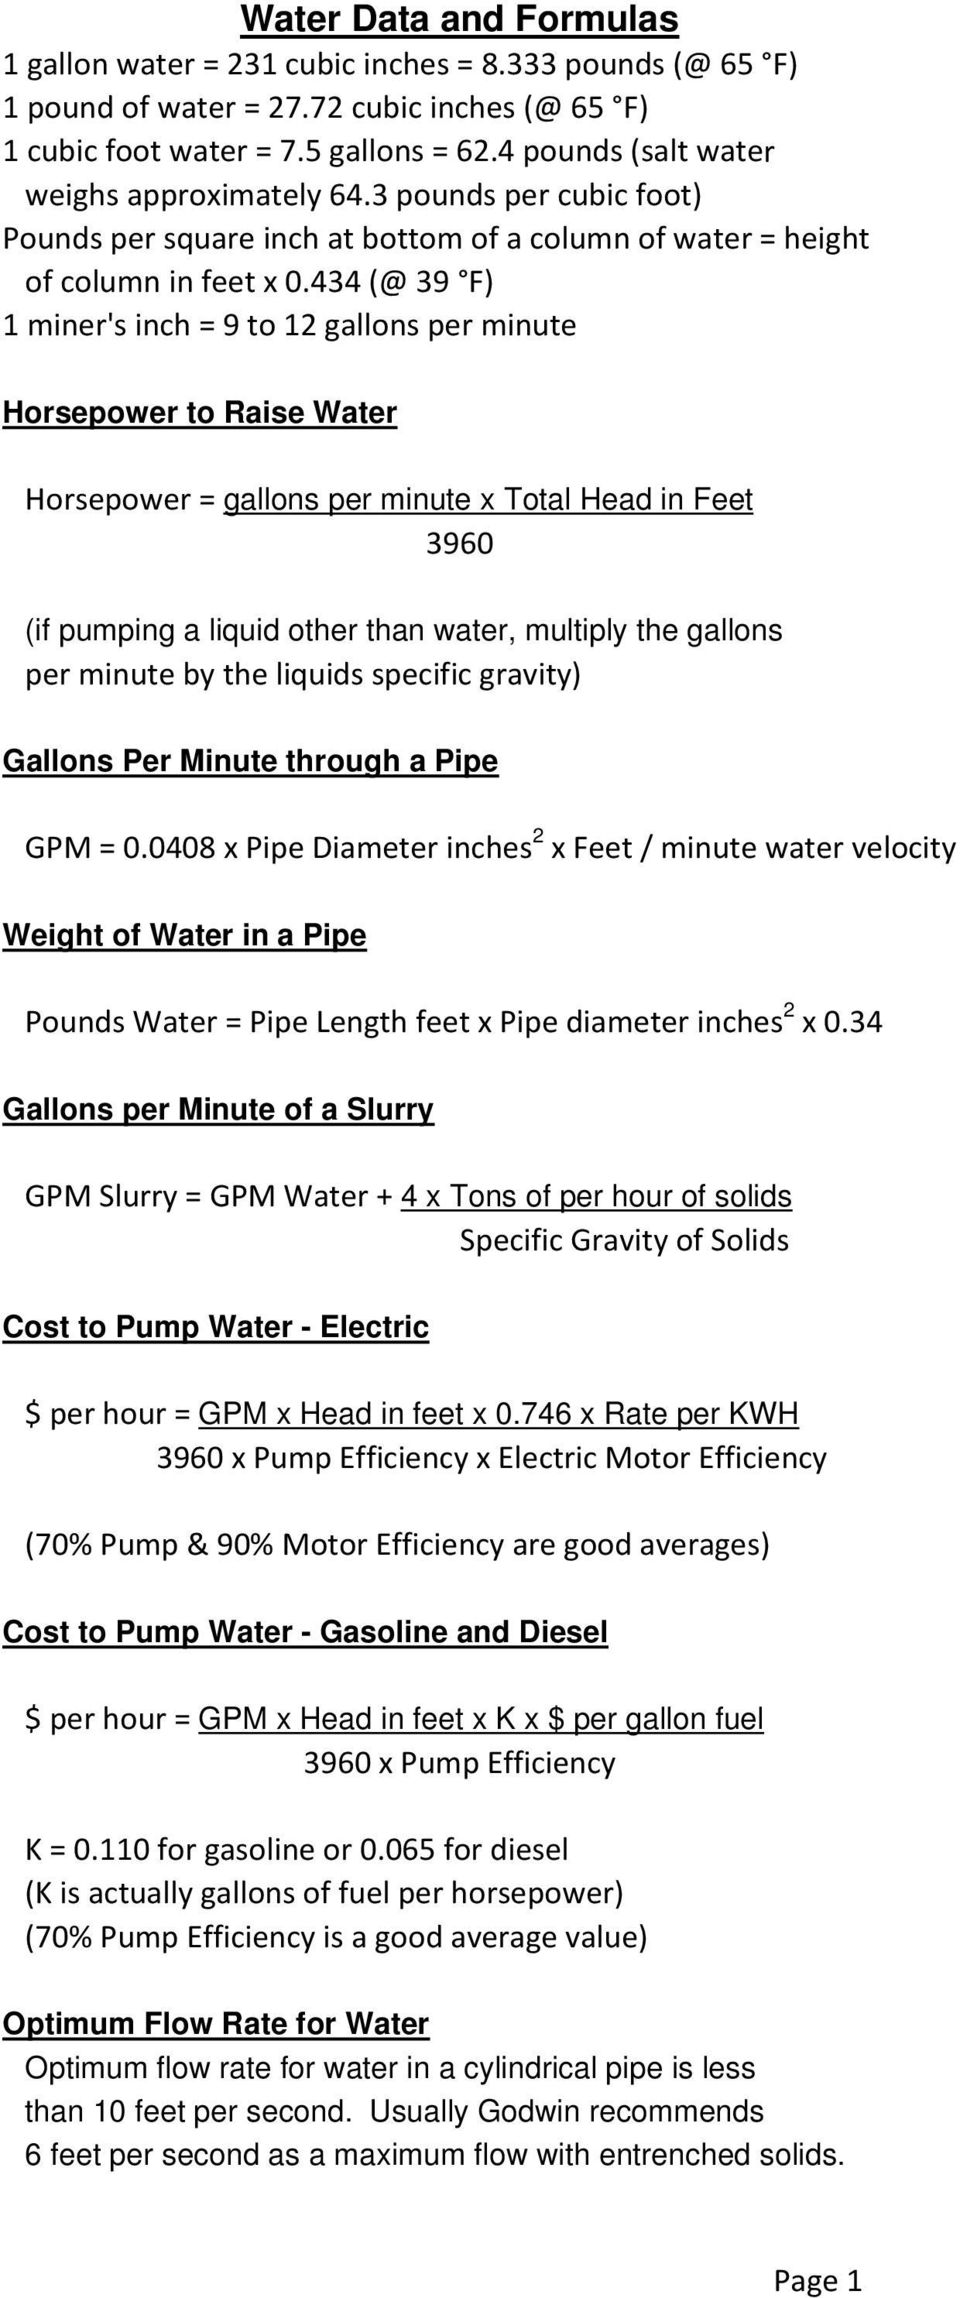 434 (@ 39 F) 1 miner's inch = 9 to 12 gallons per minute Horsepower to Raise Water Horsepower = gallons per minute x Total Head in Feet 3960 (if pumping a liquid other than water, multiply the